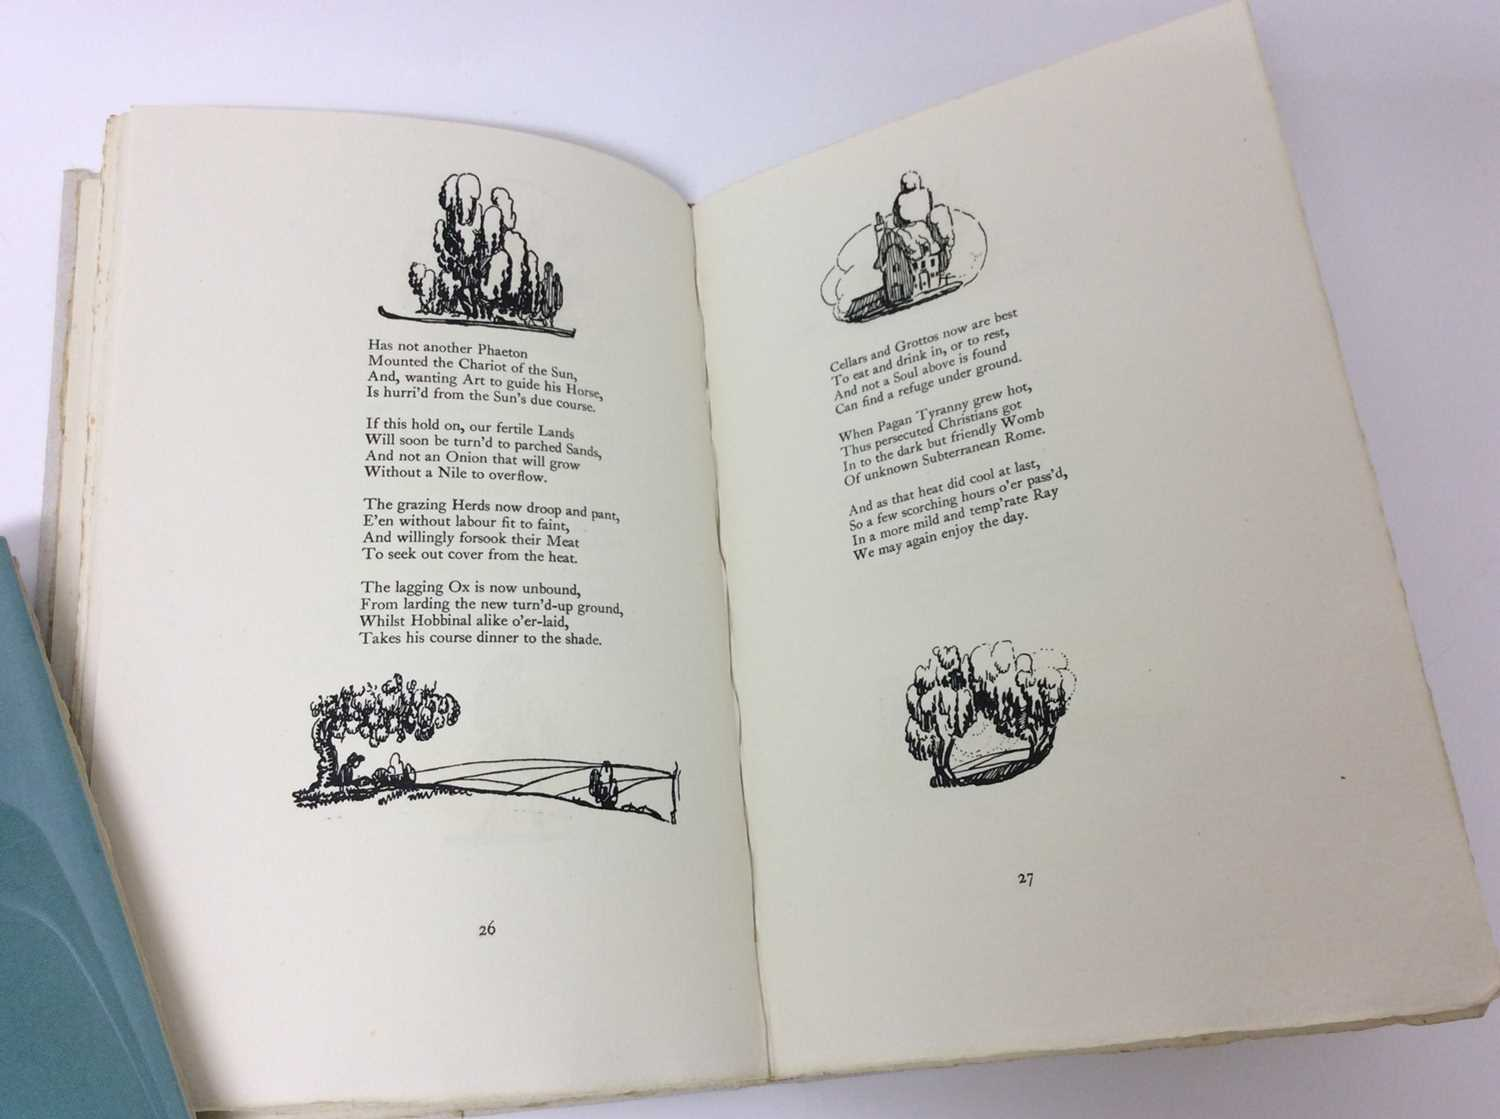 Evelyn Ansell - Twenty Five Poems, also Poems from the Works of Charles Cotton, illustrated by Claud - Image 12 of 13